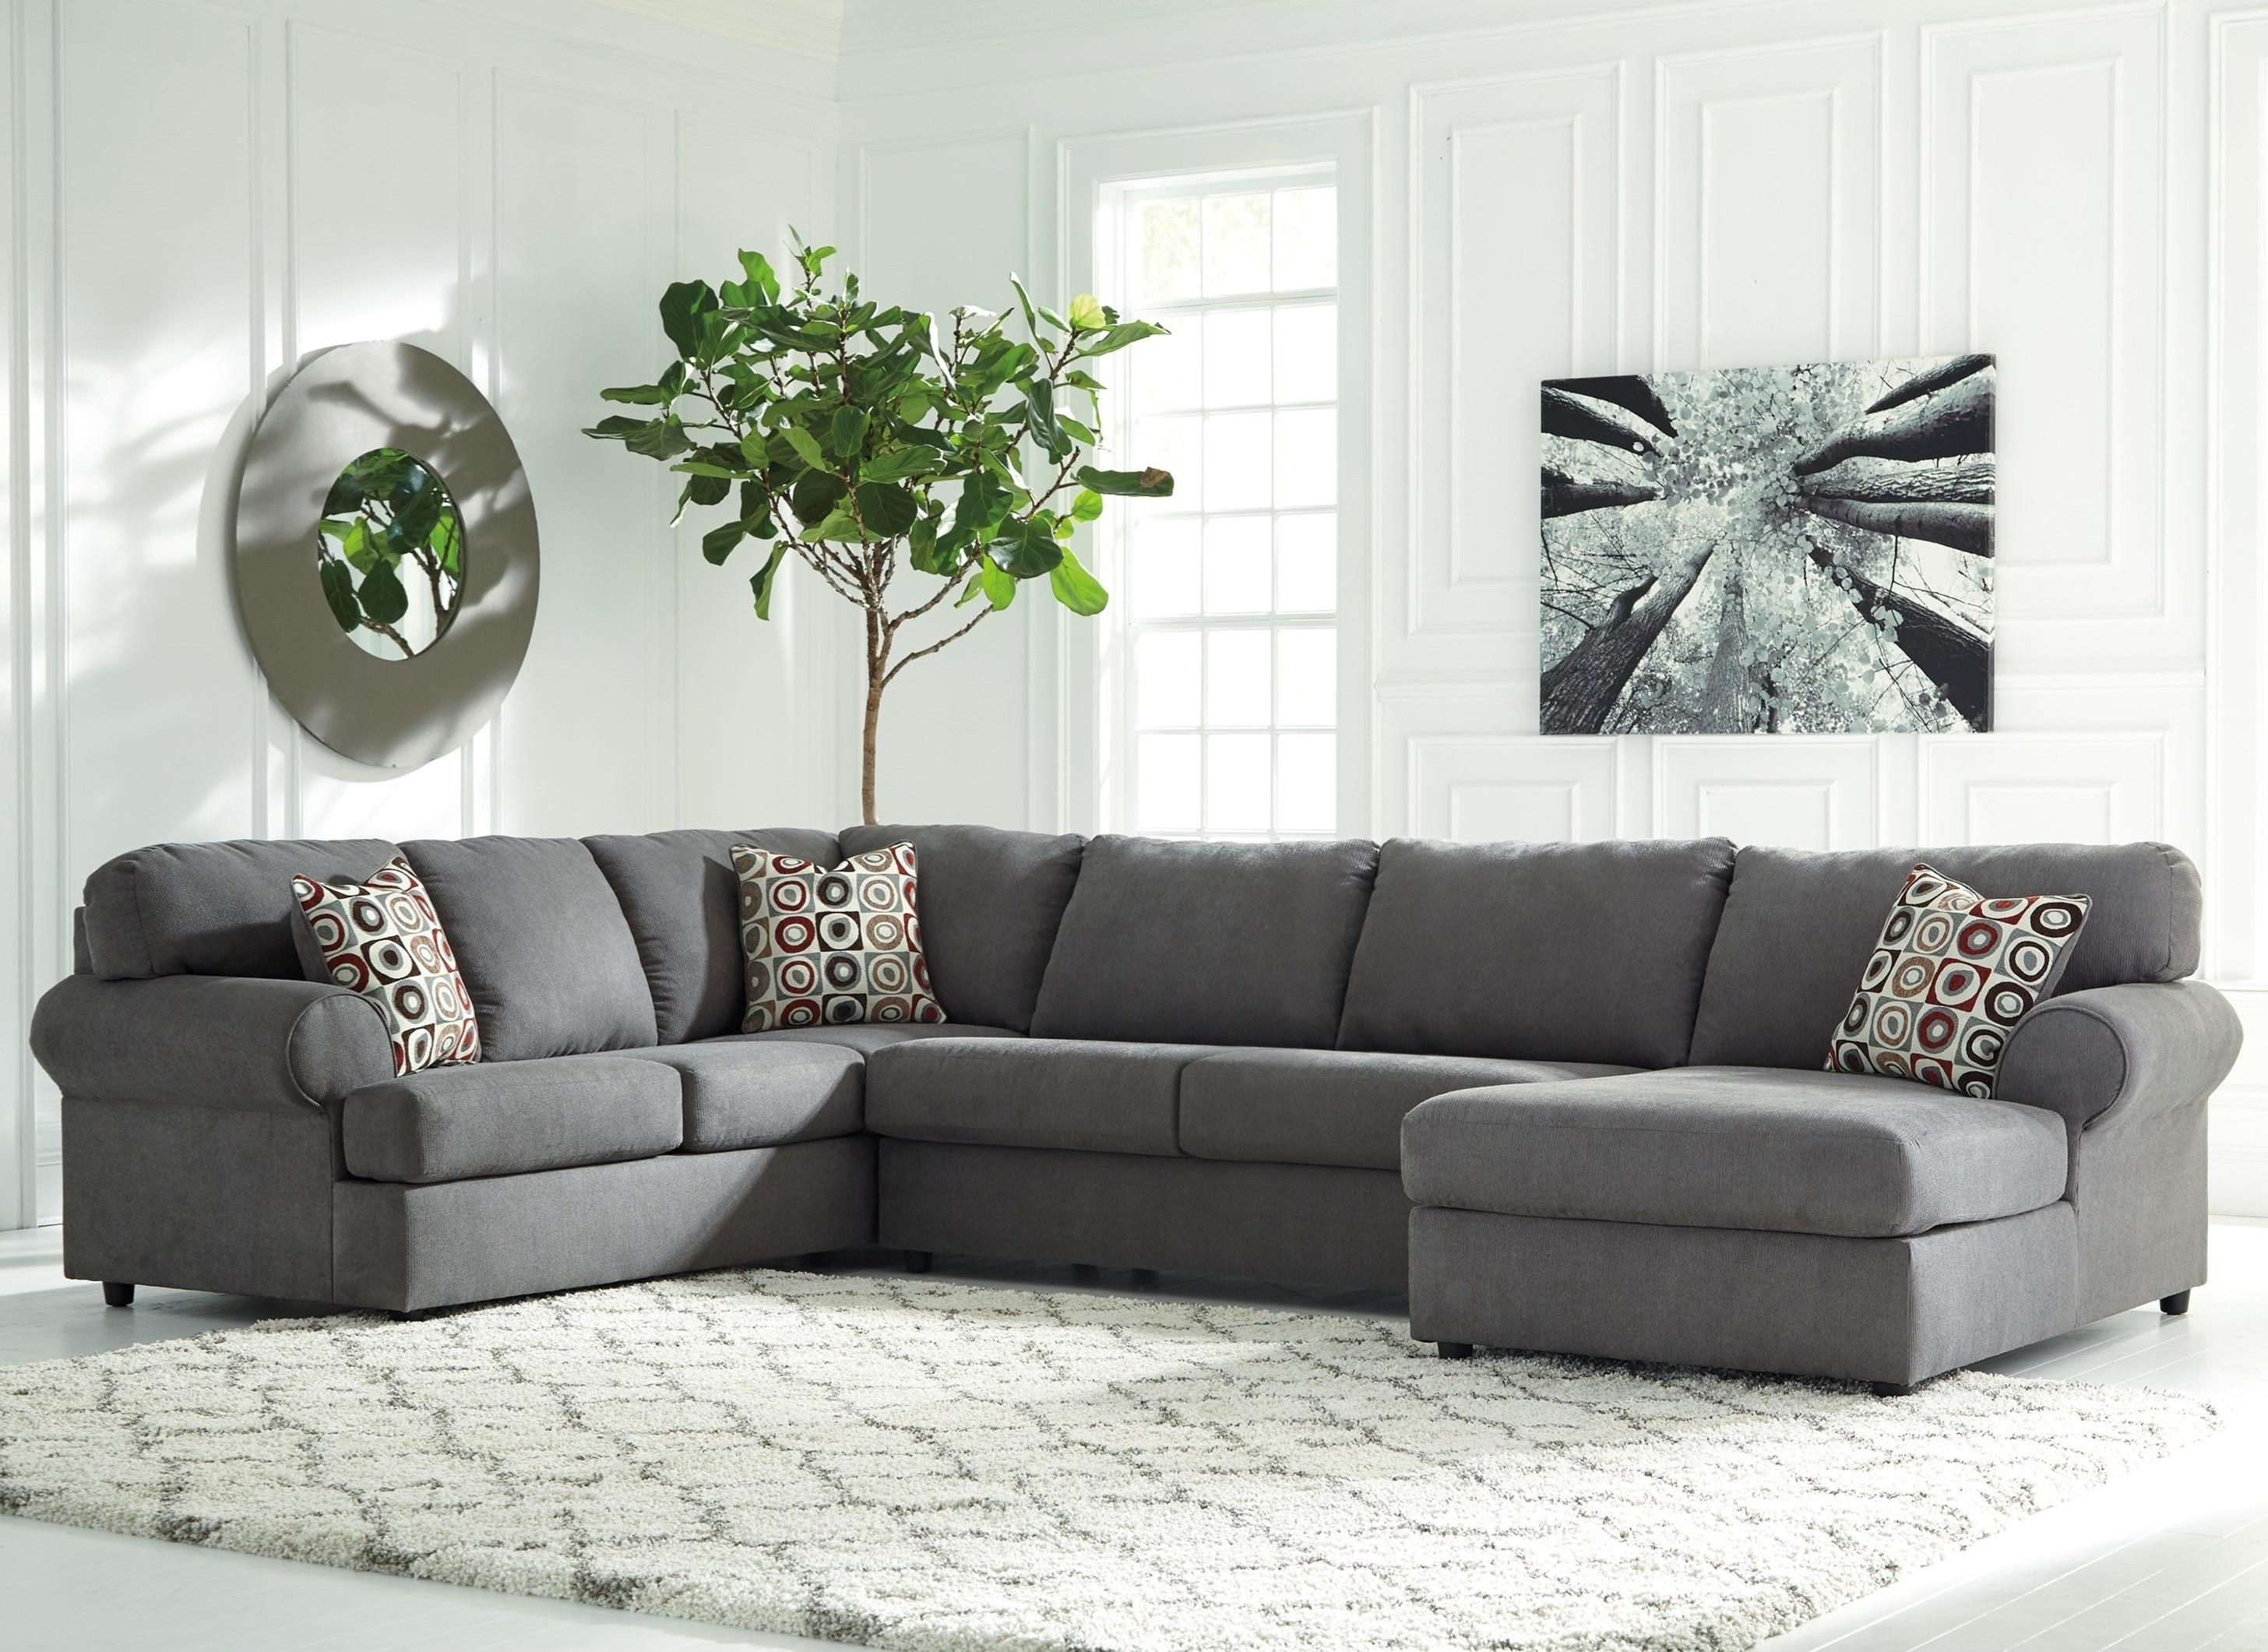 Signature Designashley Jayceon 3 Piece Sectional With Left Throughout Fashionable Left Chaise Sectionals (View 9 of 15)